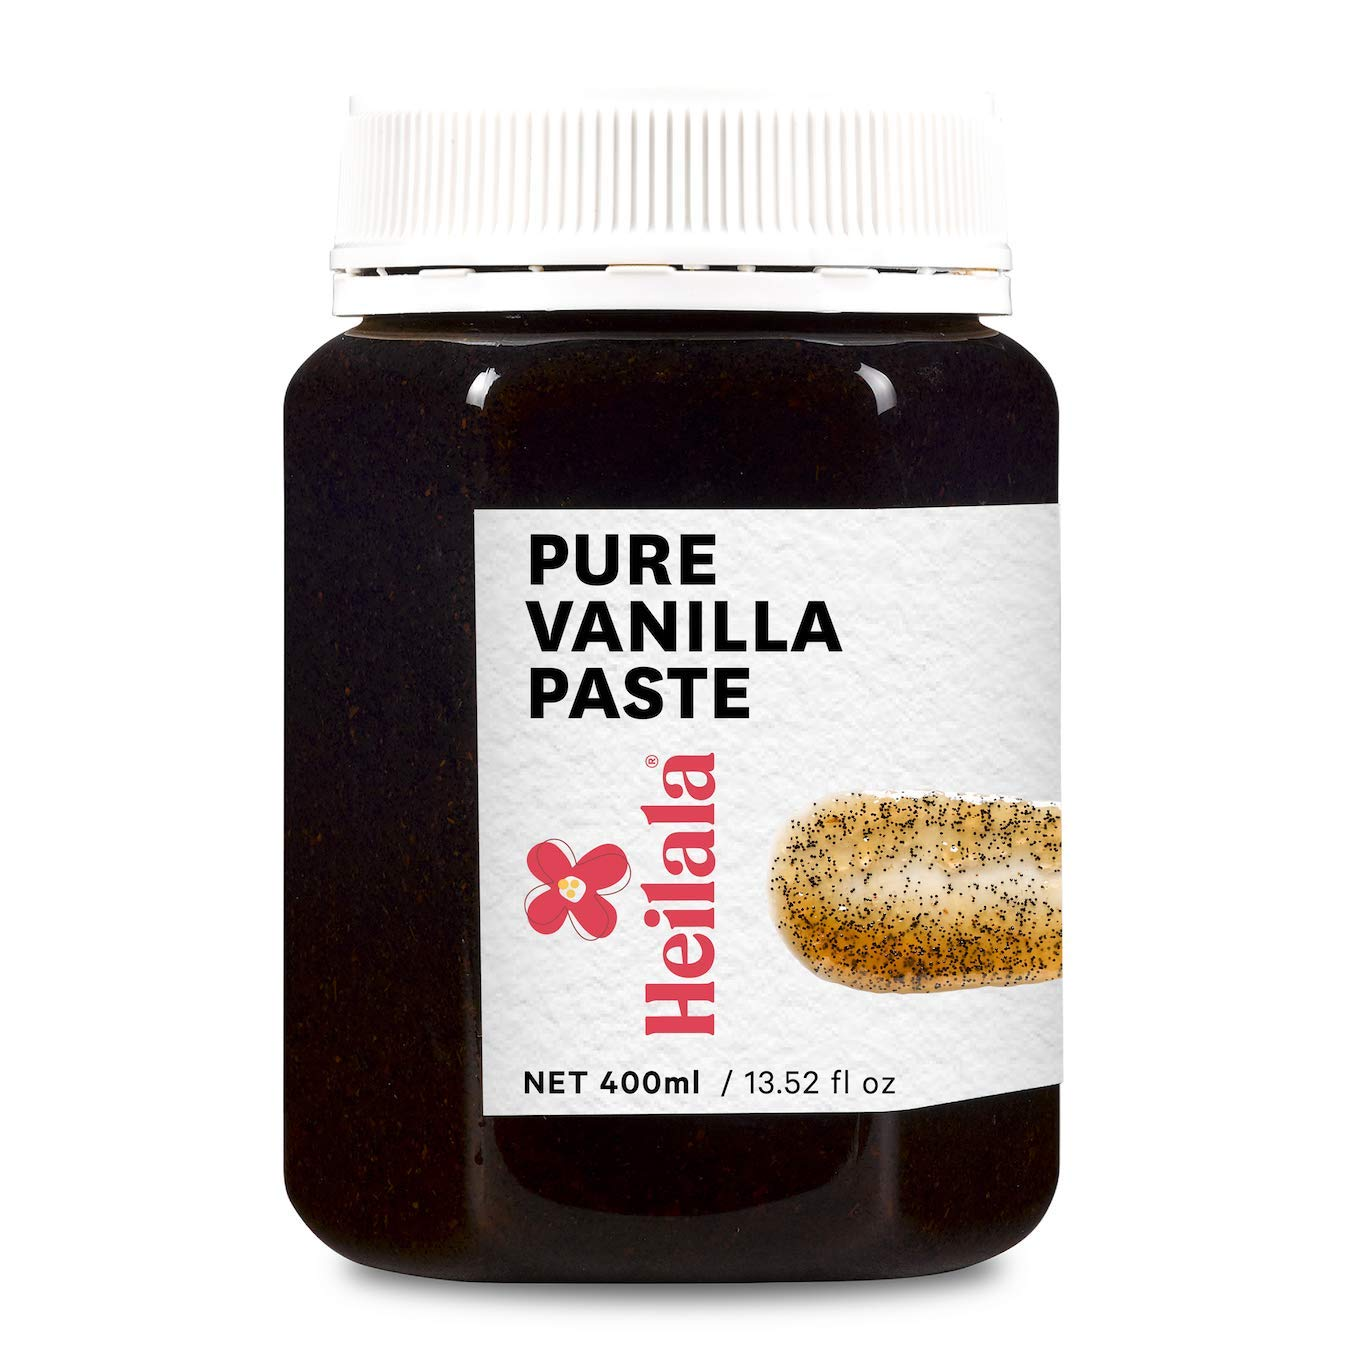 Vanilla Bean Paste for Baking – Heilala Vanilla, Choice of the Worlds Best Chefs & Bakers, Using Sustainable, Ethically Sourced Vanilla, Hand-Picked from Polynesia, 13.52 oz